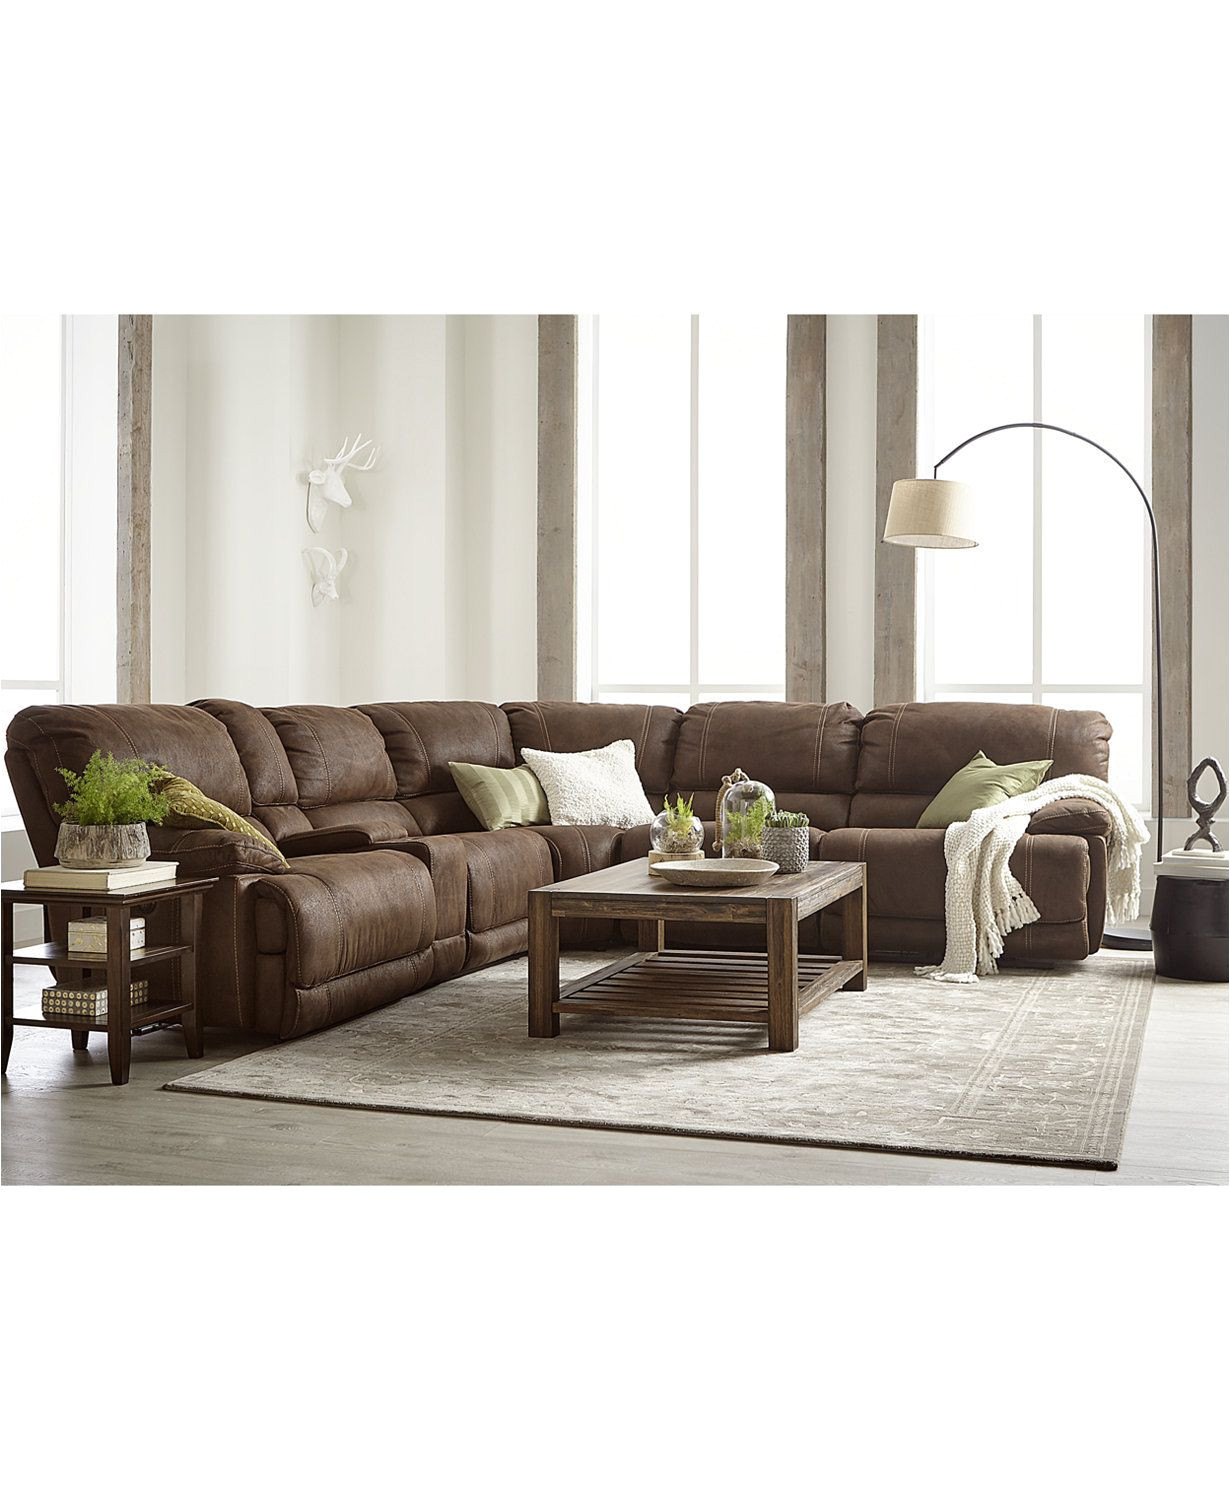 macys leather sectional sofa beautiful jedd fabric power reclining sectional sofa collection of macys leather sectional